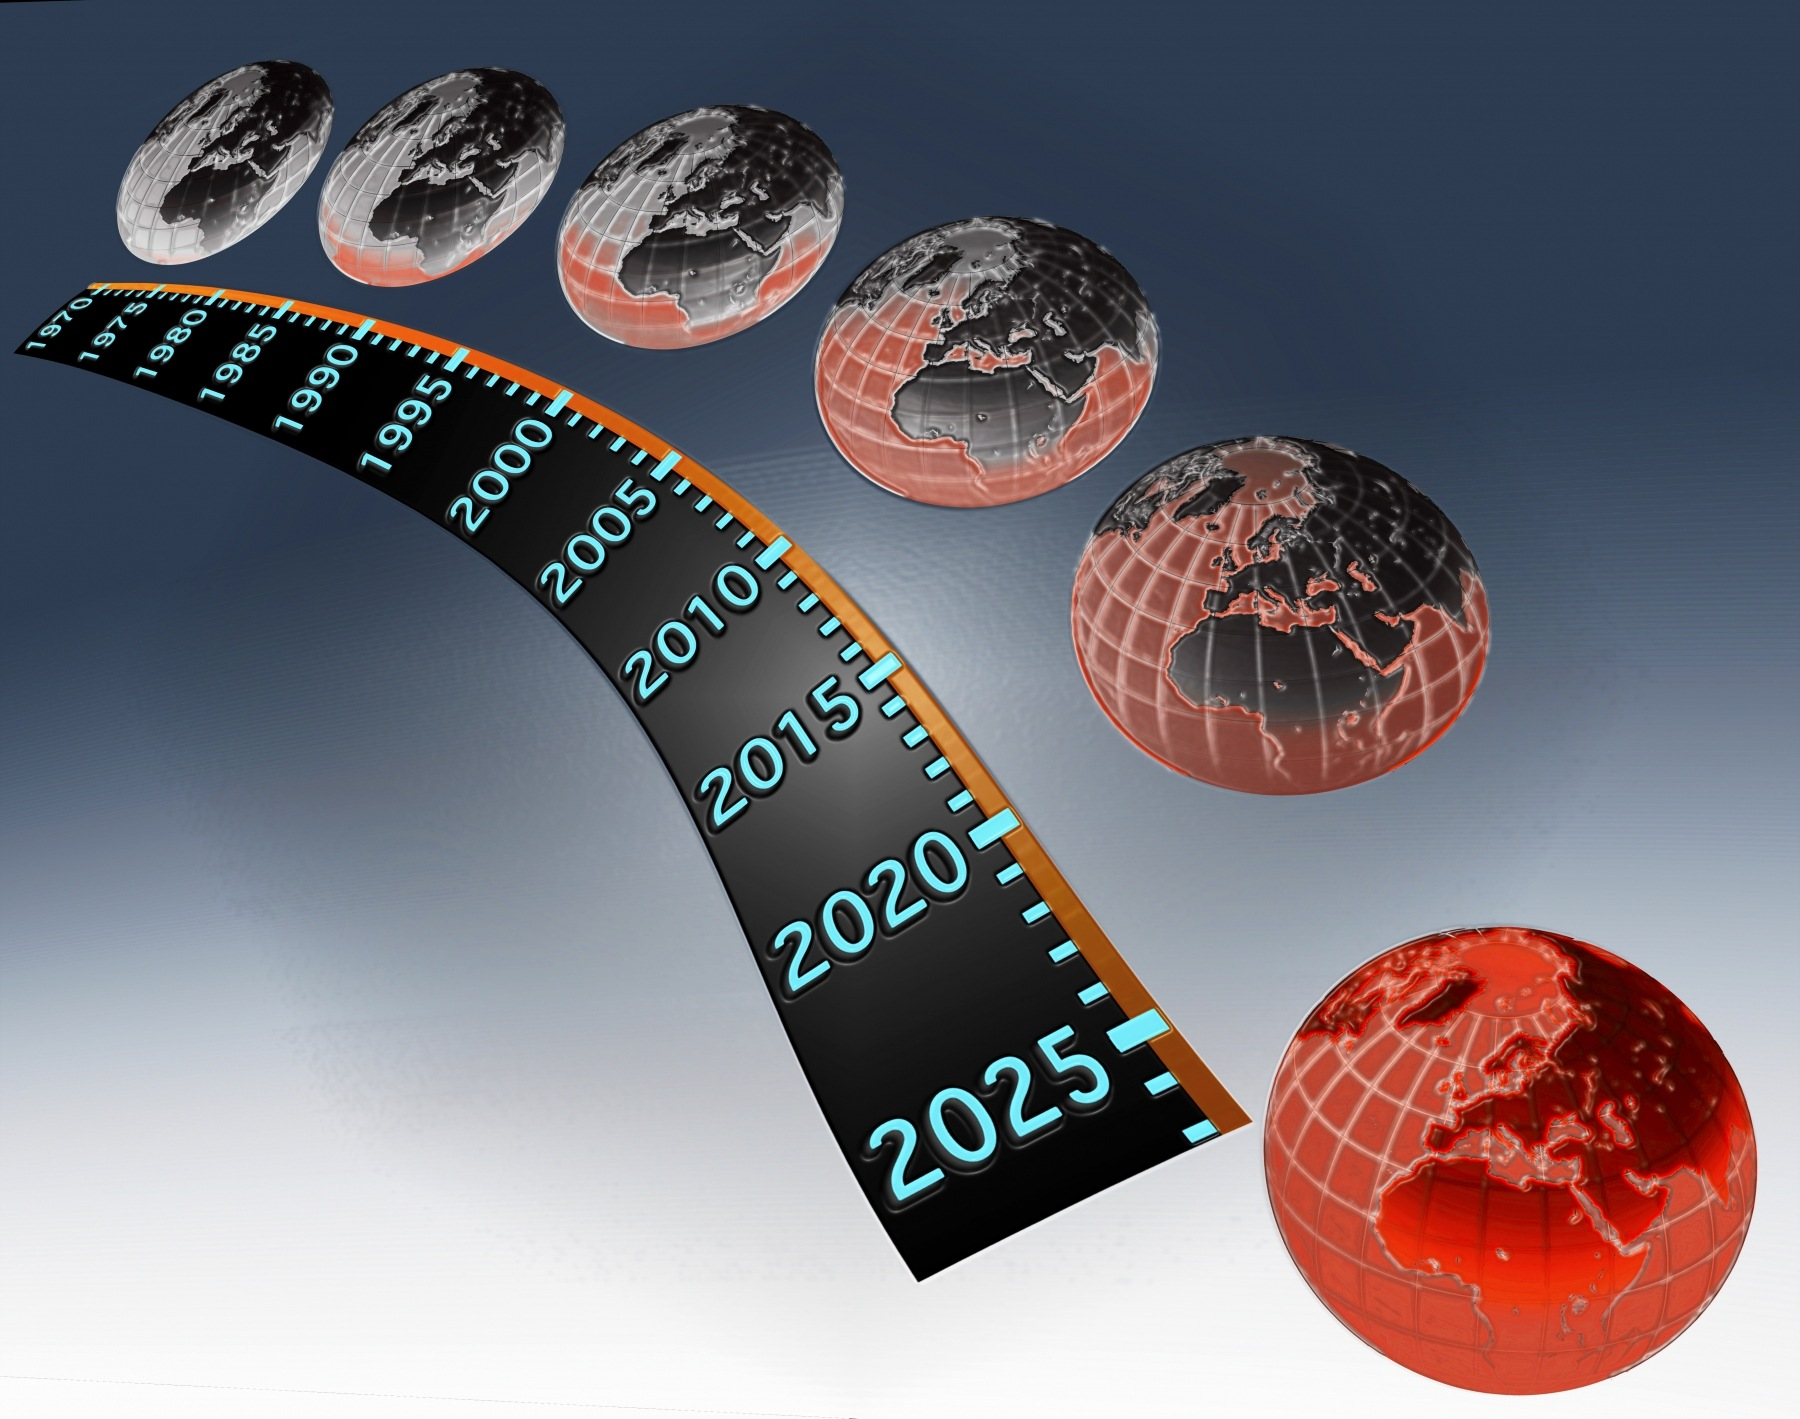 The gradual worsening of global warming from 1970 to 2025